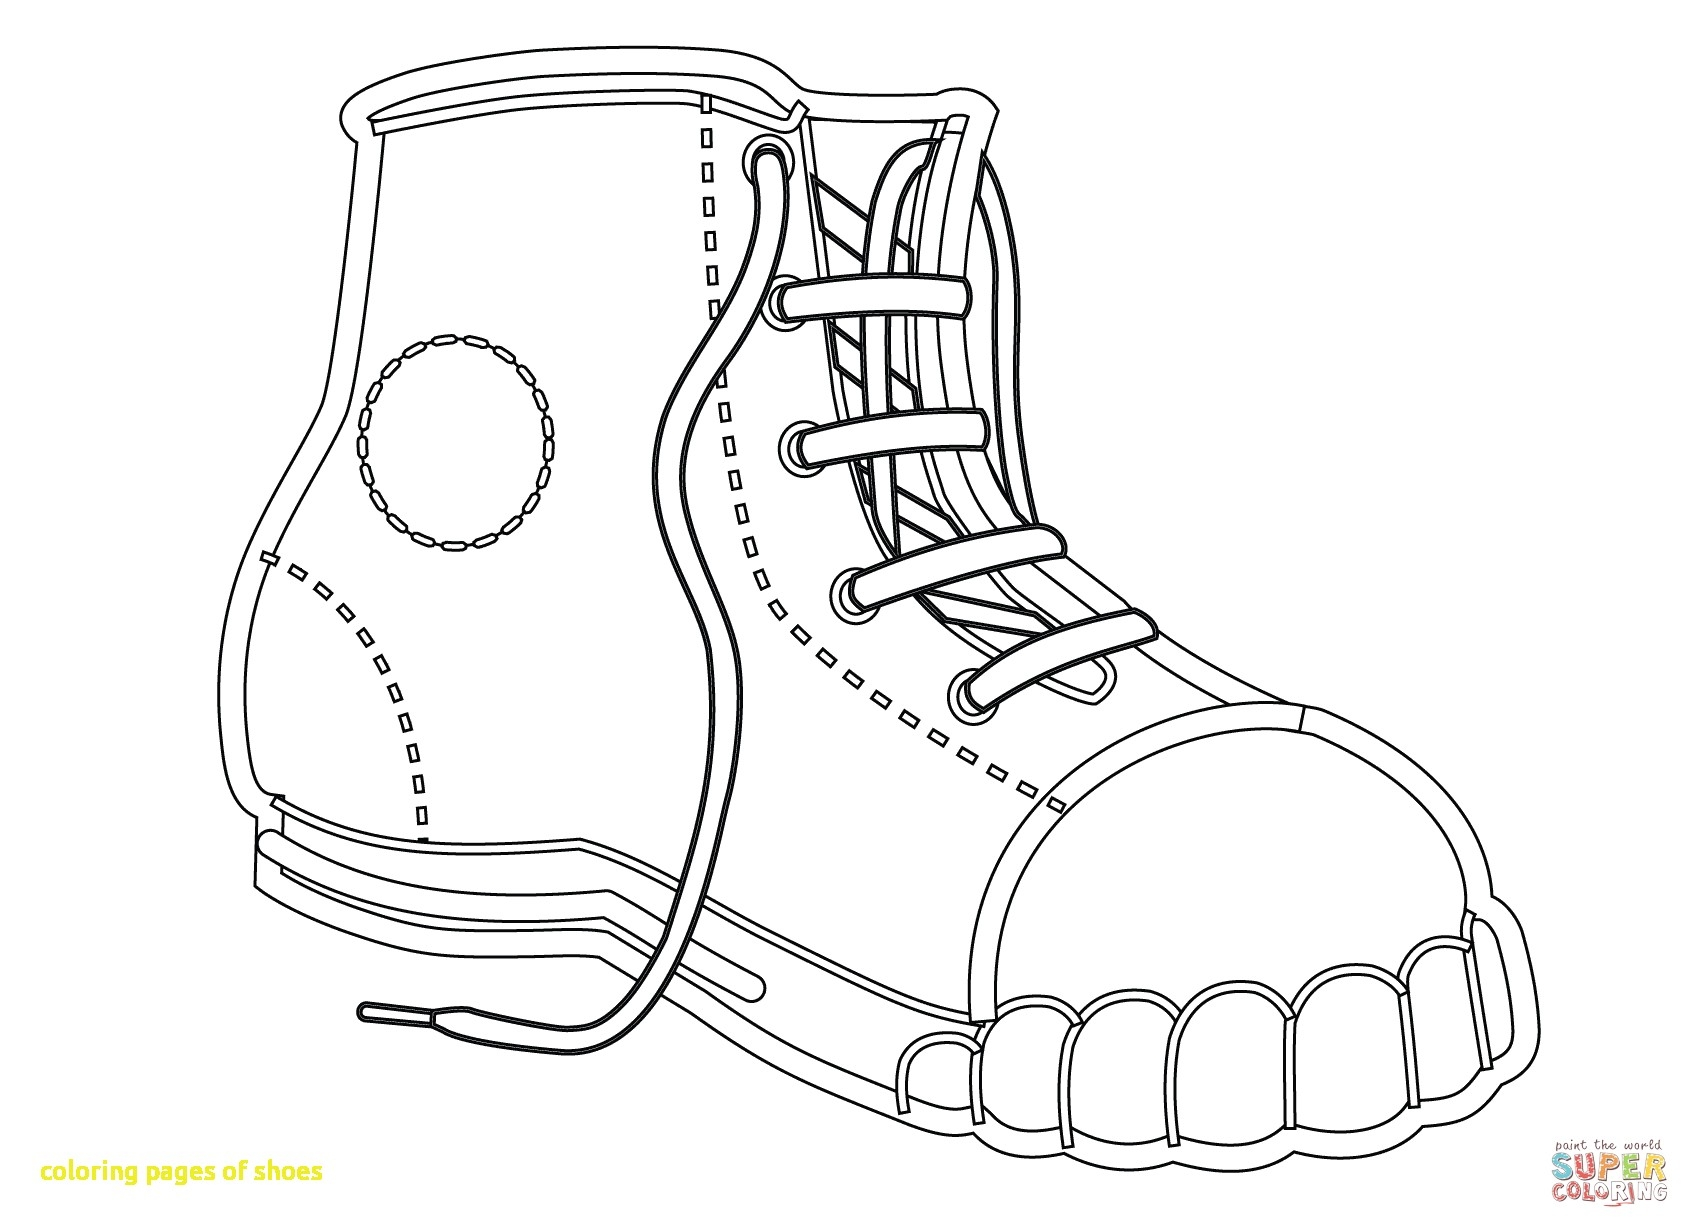 1690x1228 Outstanding Printable Tennis Shoe Coloring Pages Nba Chicago Bull